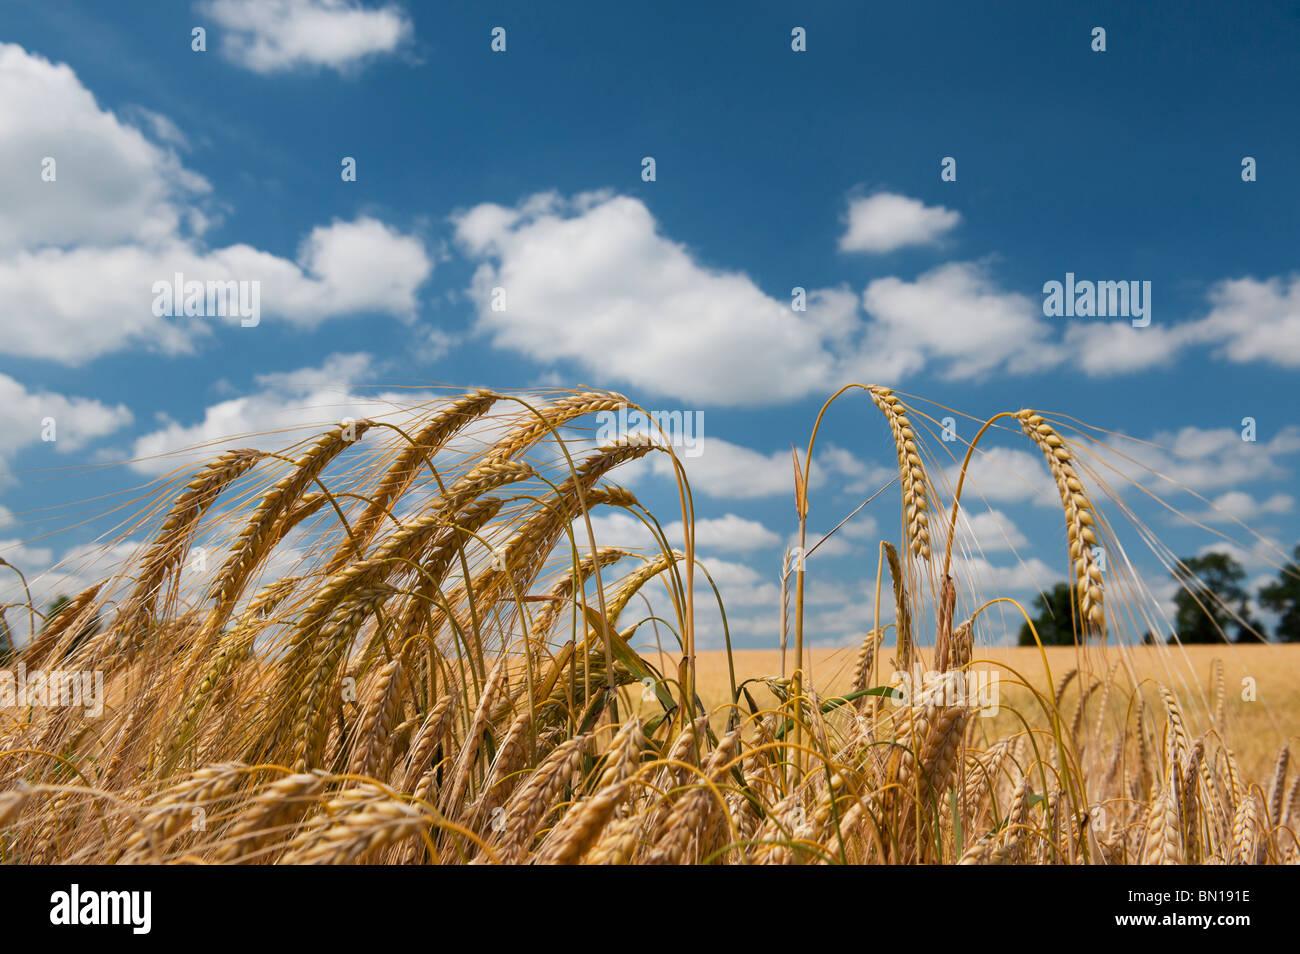 Barley ripening in a field in the English countryside - Stock Image